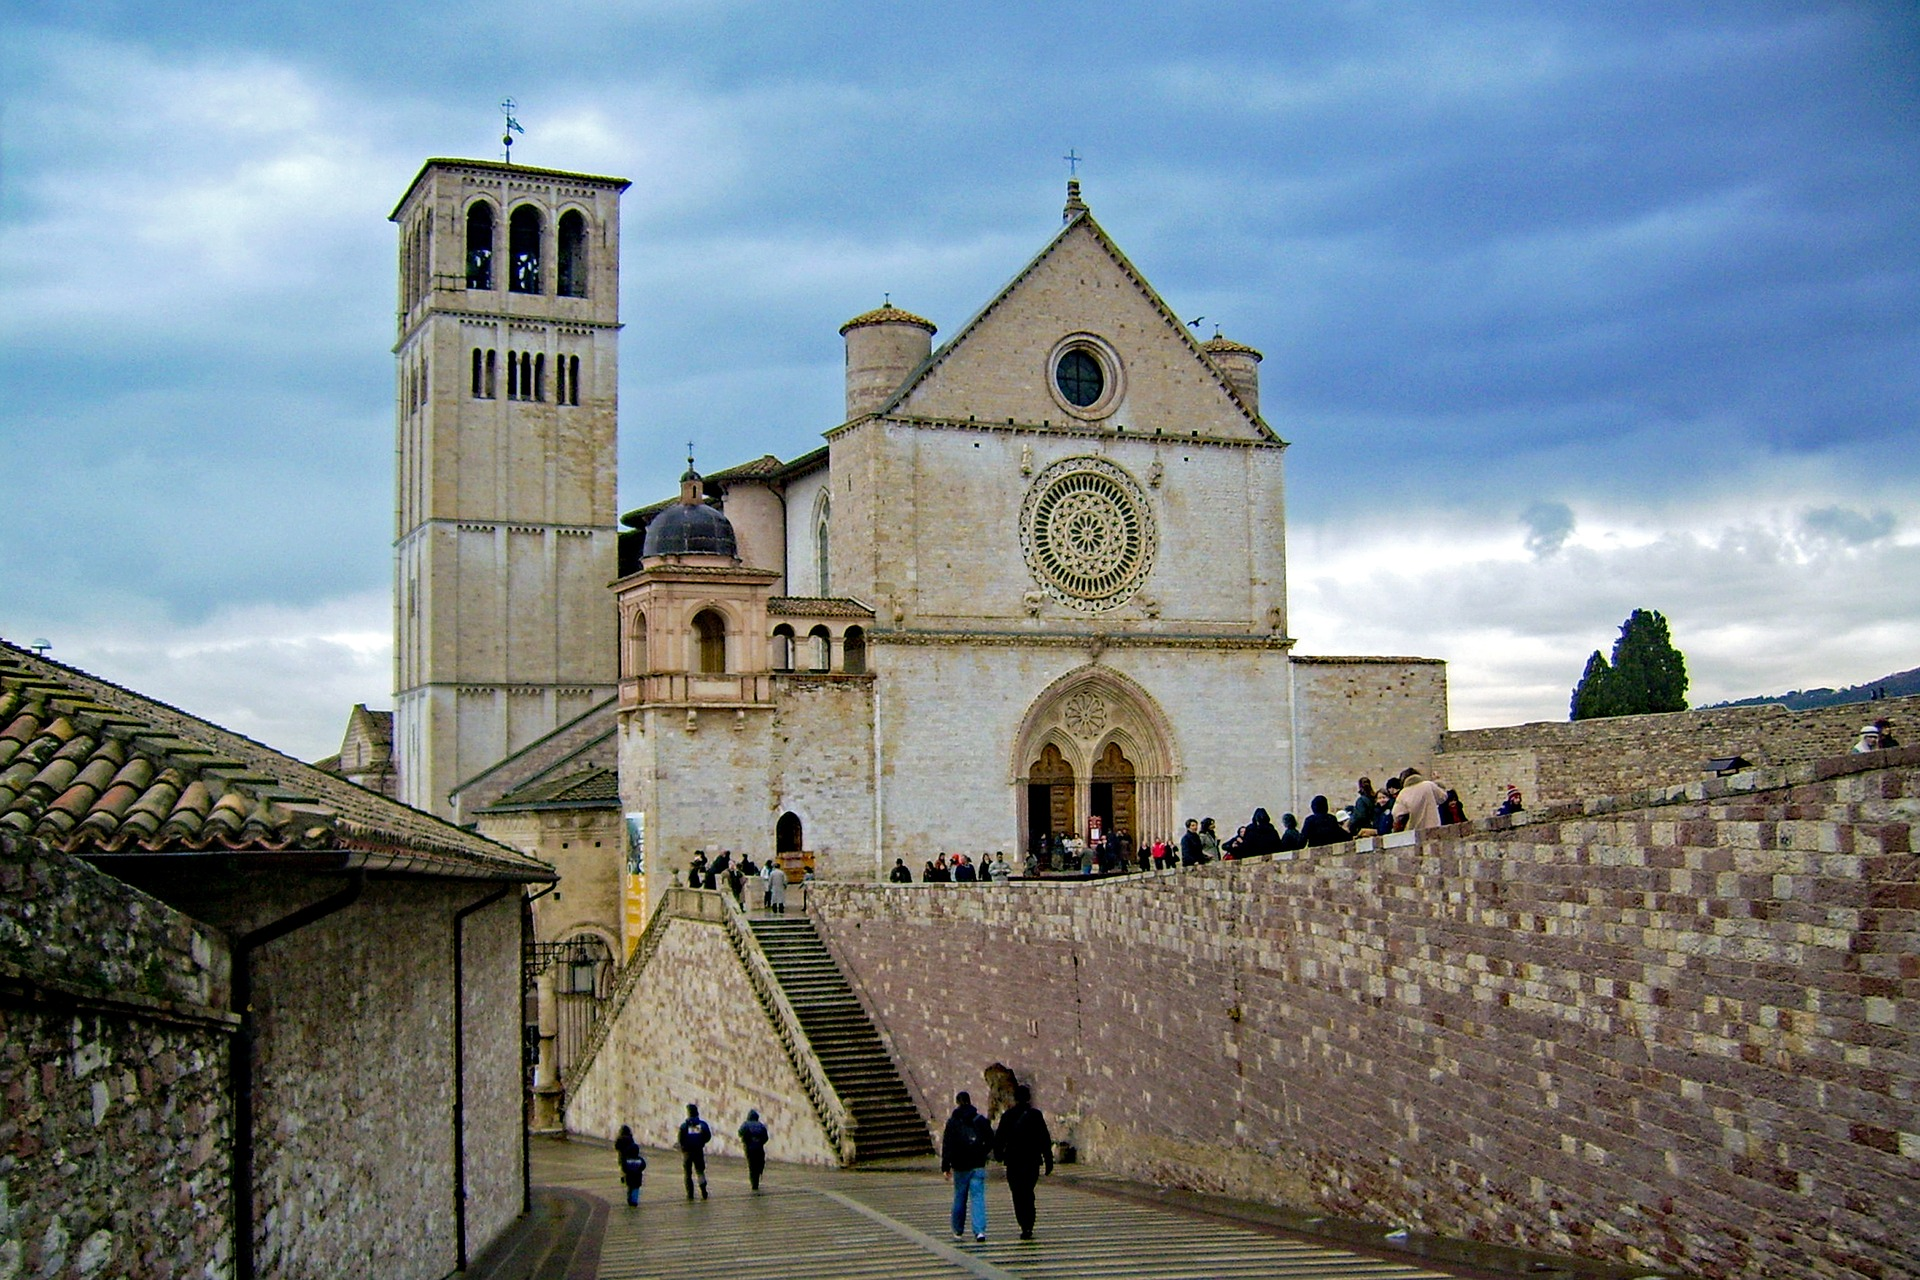 Basiliek in Assisi